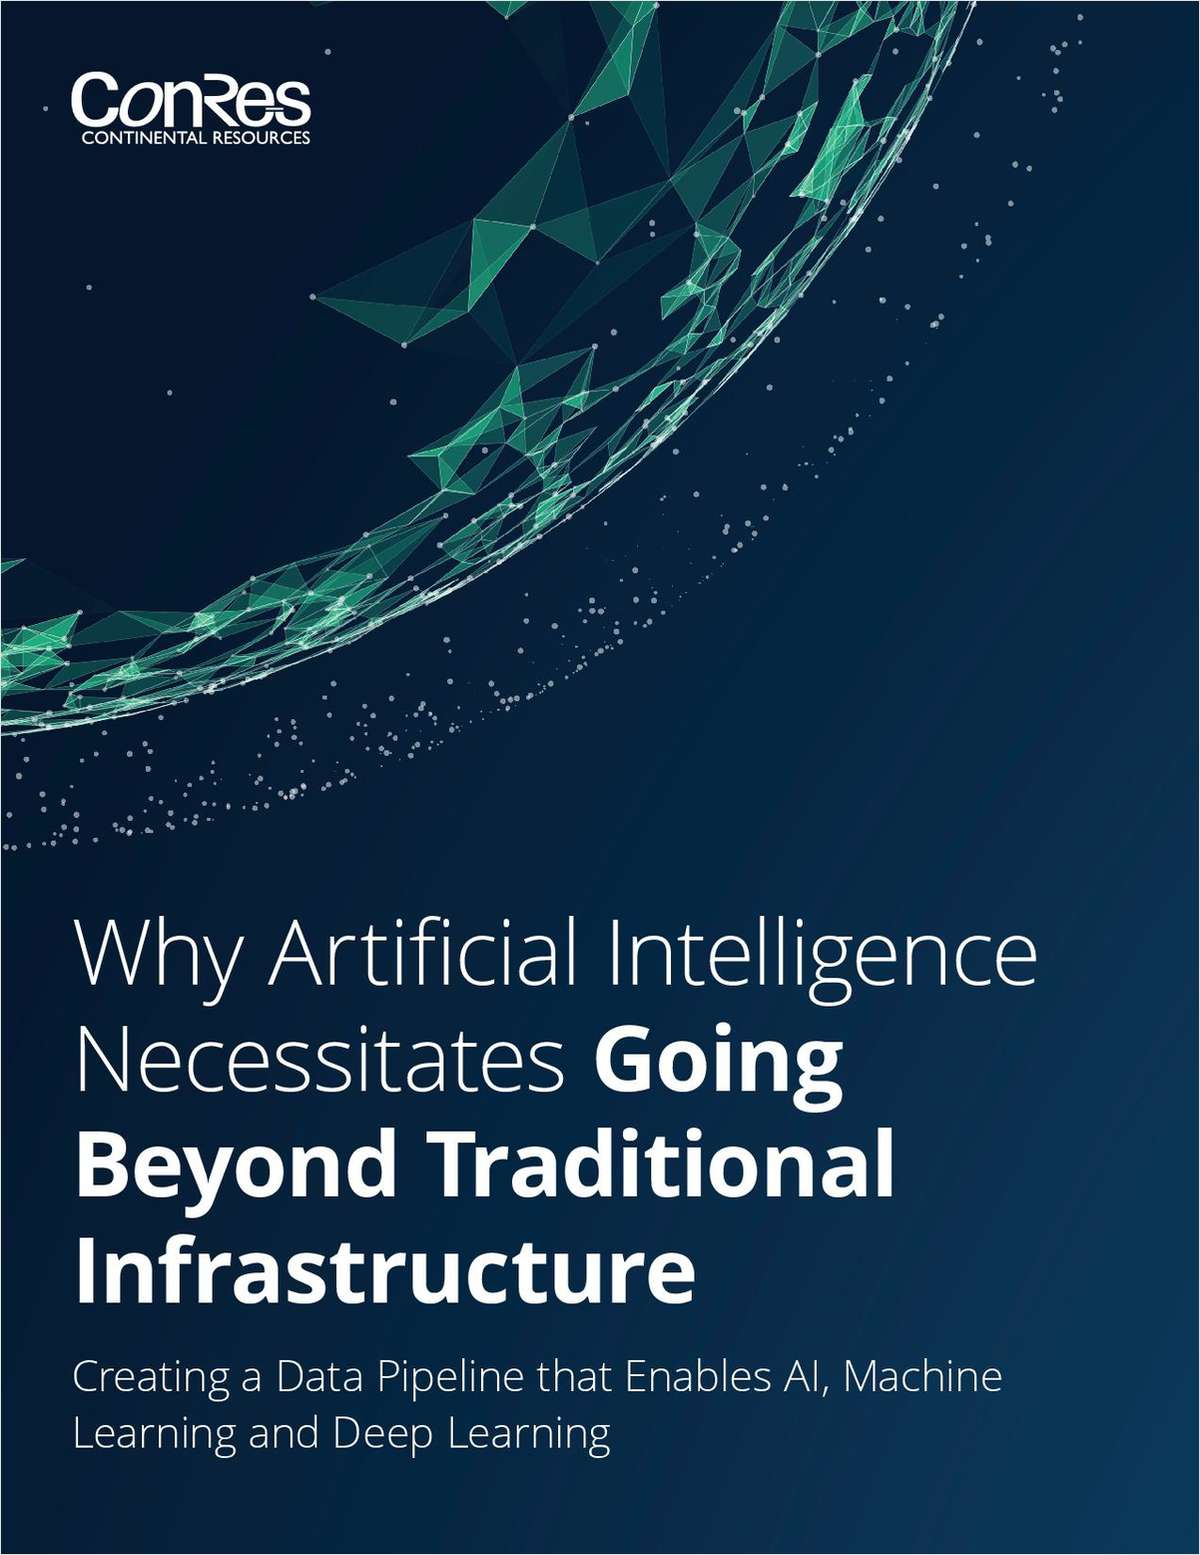 Why Artificial Intelligence Necessitates Going Beyond Traditional Infrastructure